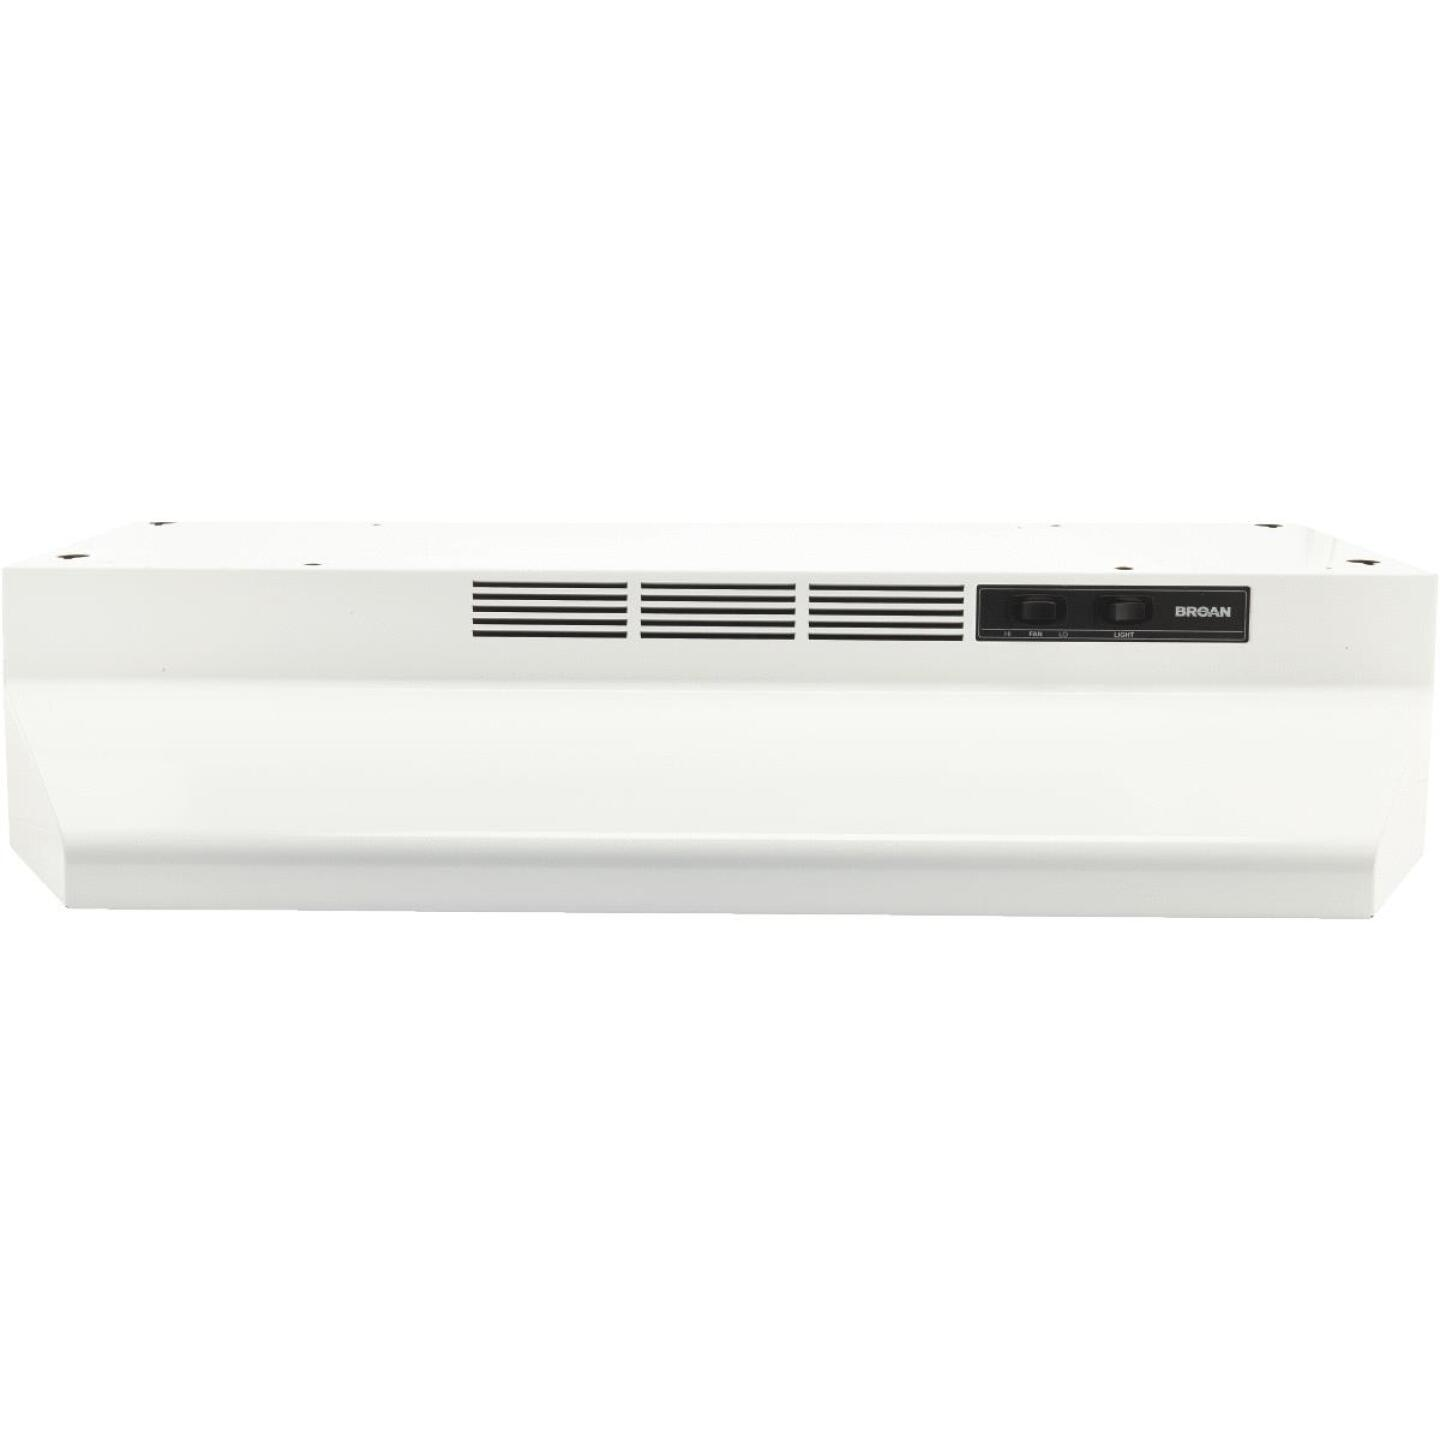 Broan-Nutone 41000 Series 30 In. Non-Ducted White Range Hood Image 2